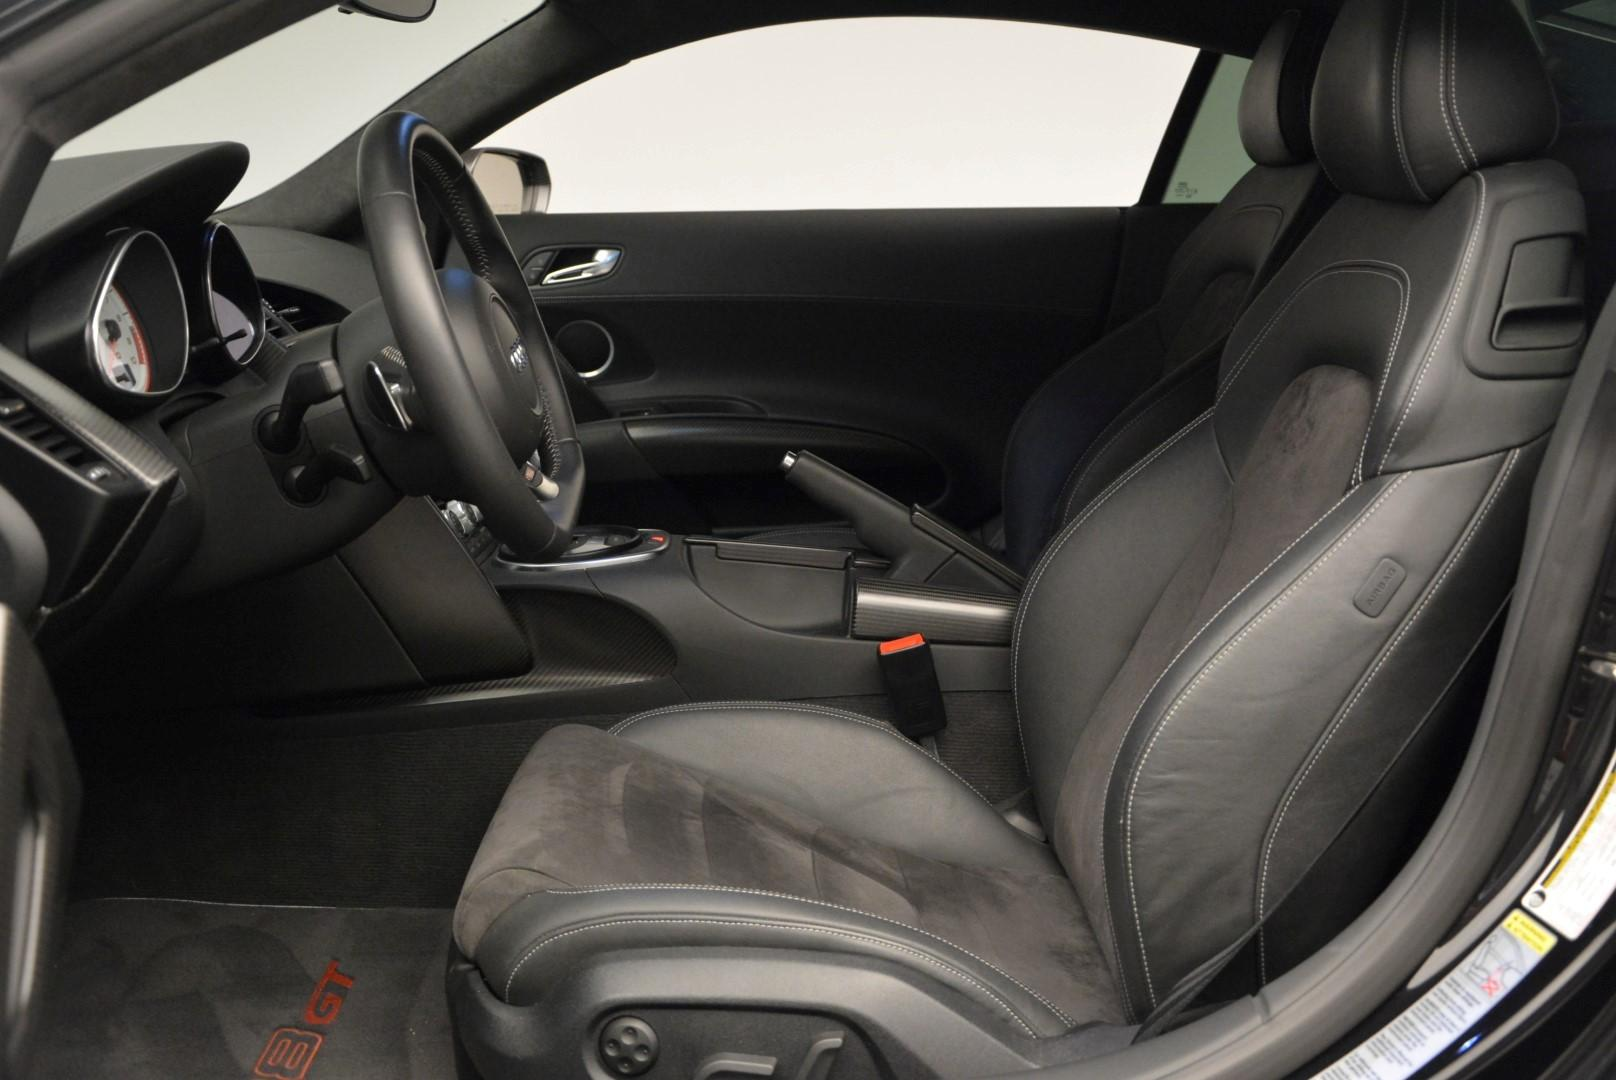 Used 2012 Audi R8 GT (R tronic) For Sale In Greenwich, CT 115_p14